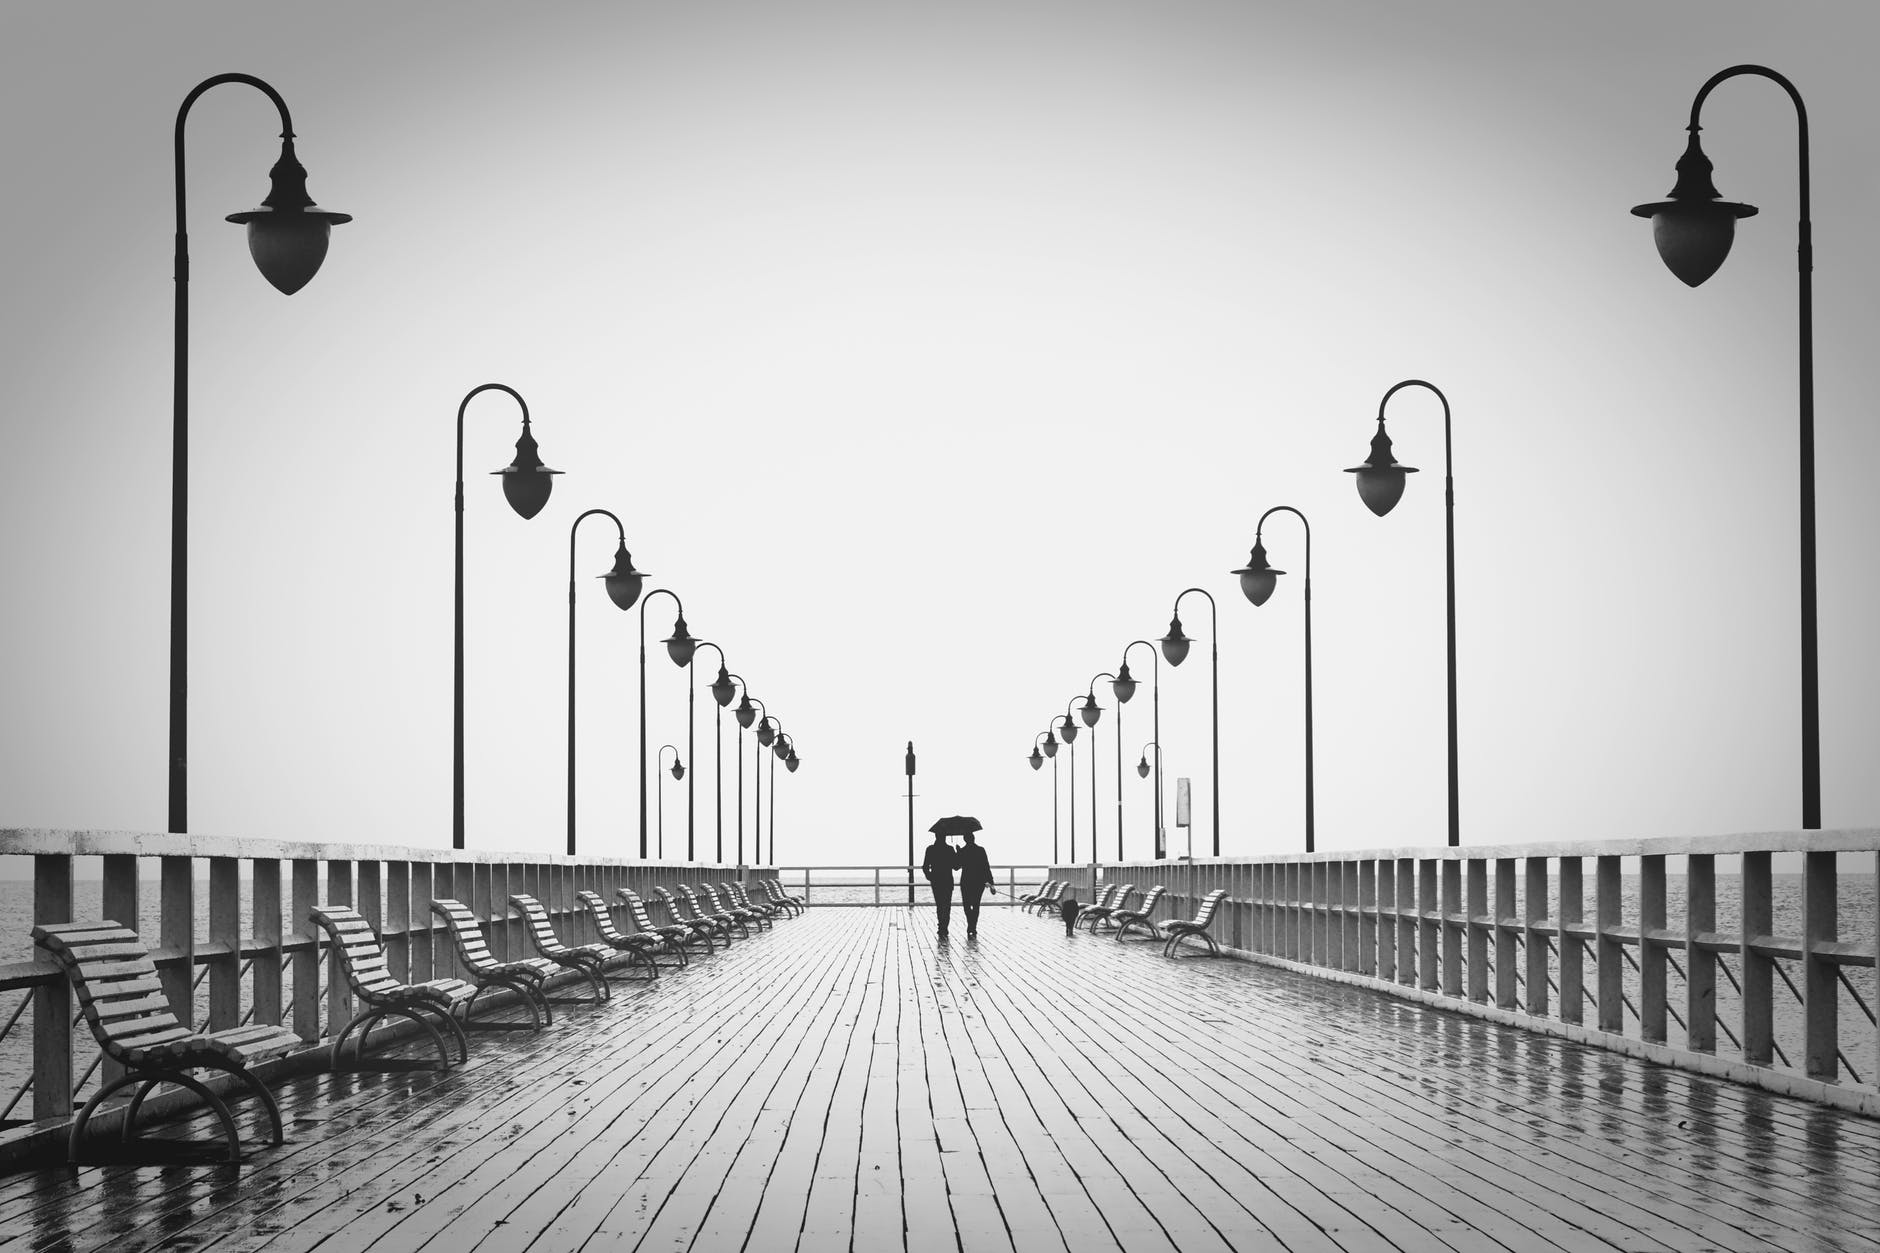 affection benches black and white boardwalk